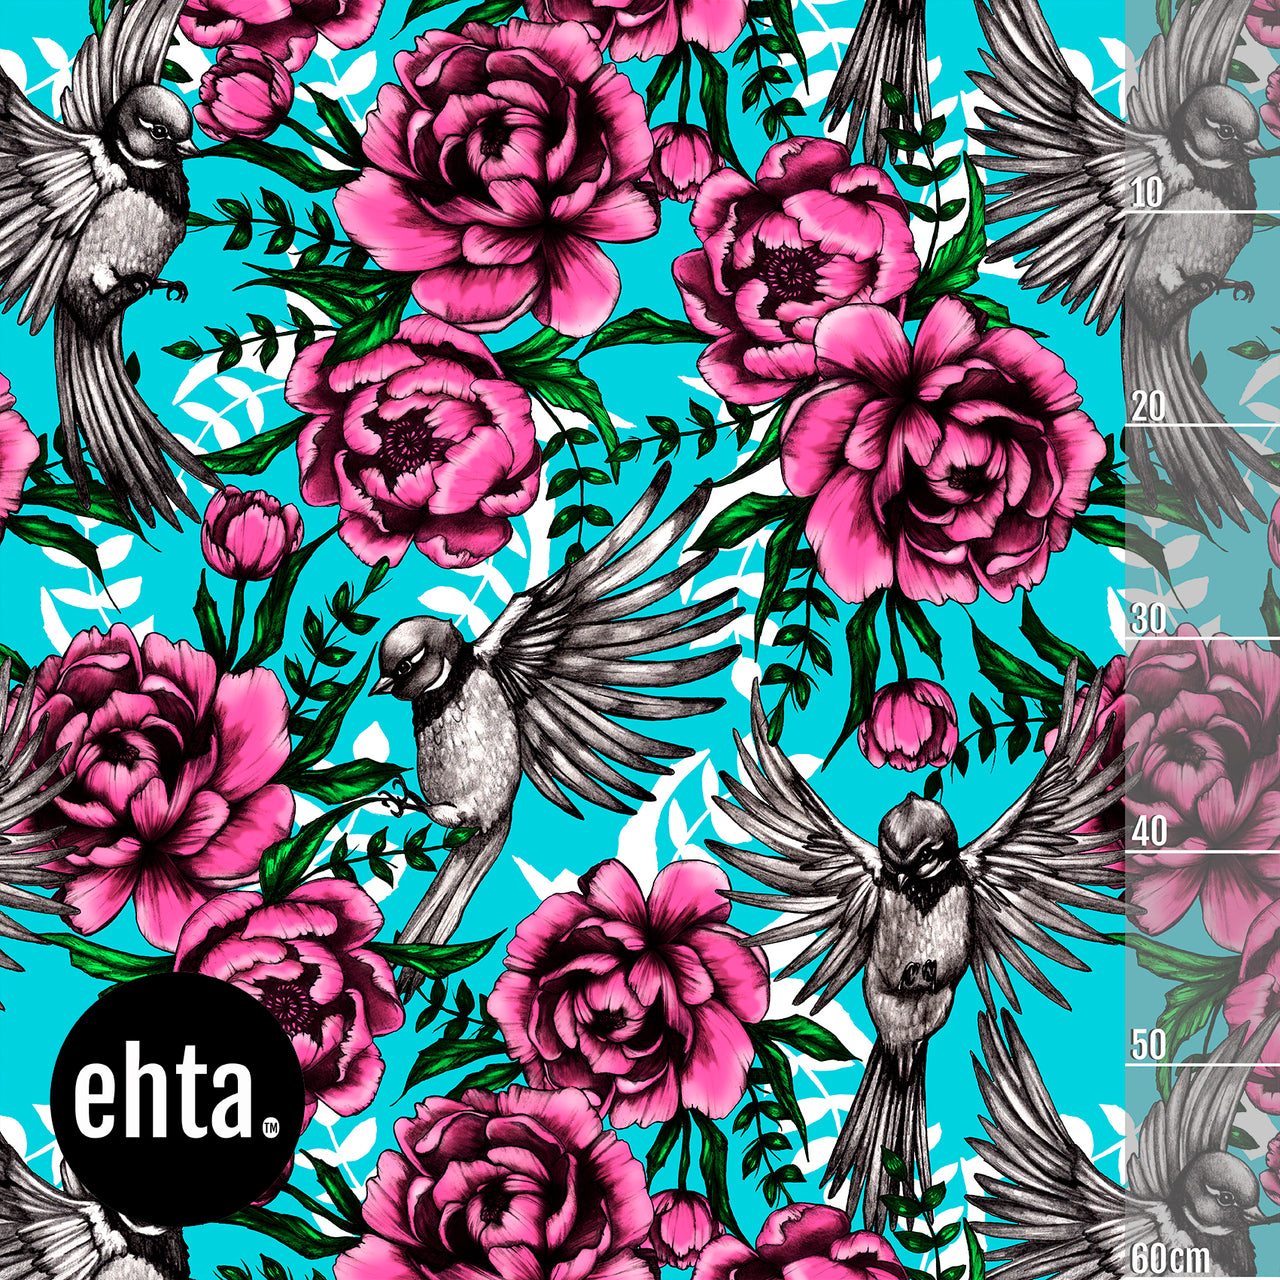 Serenity Organic Jersey, Pink-Turquoise by Ehta